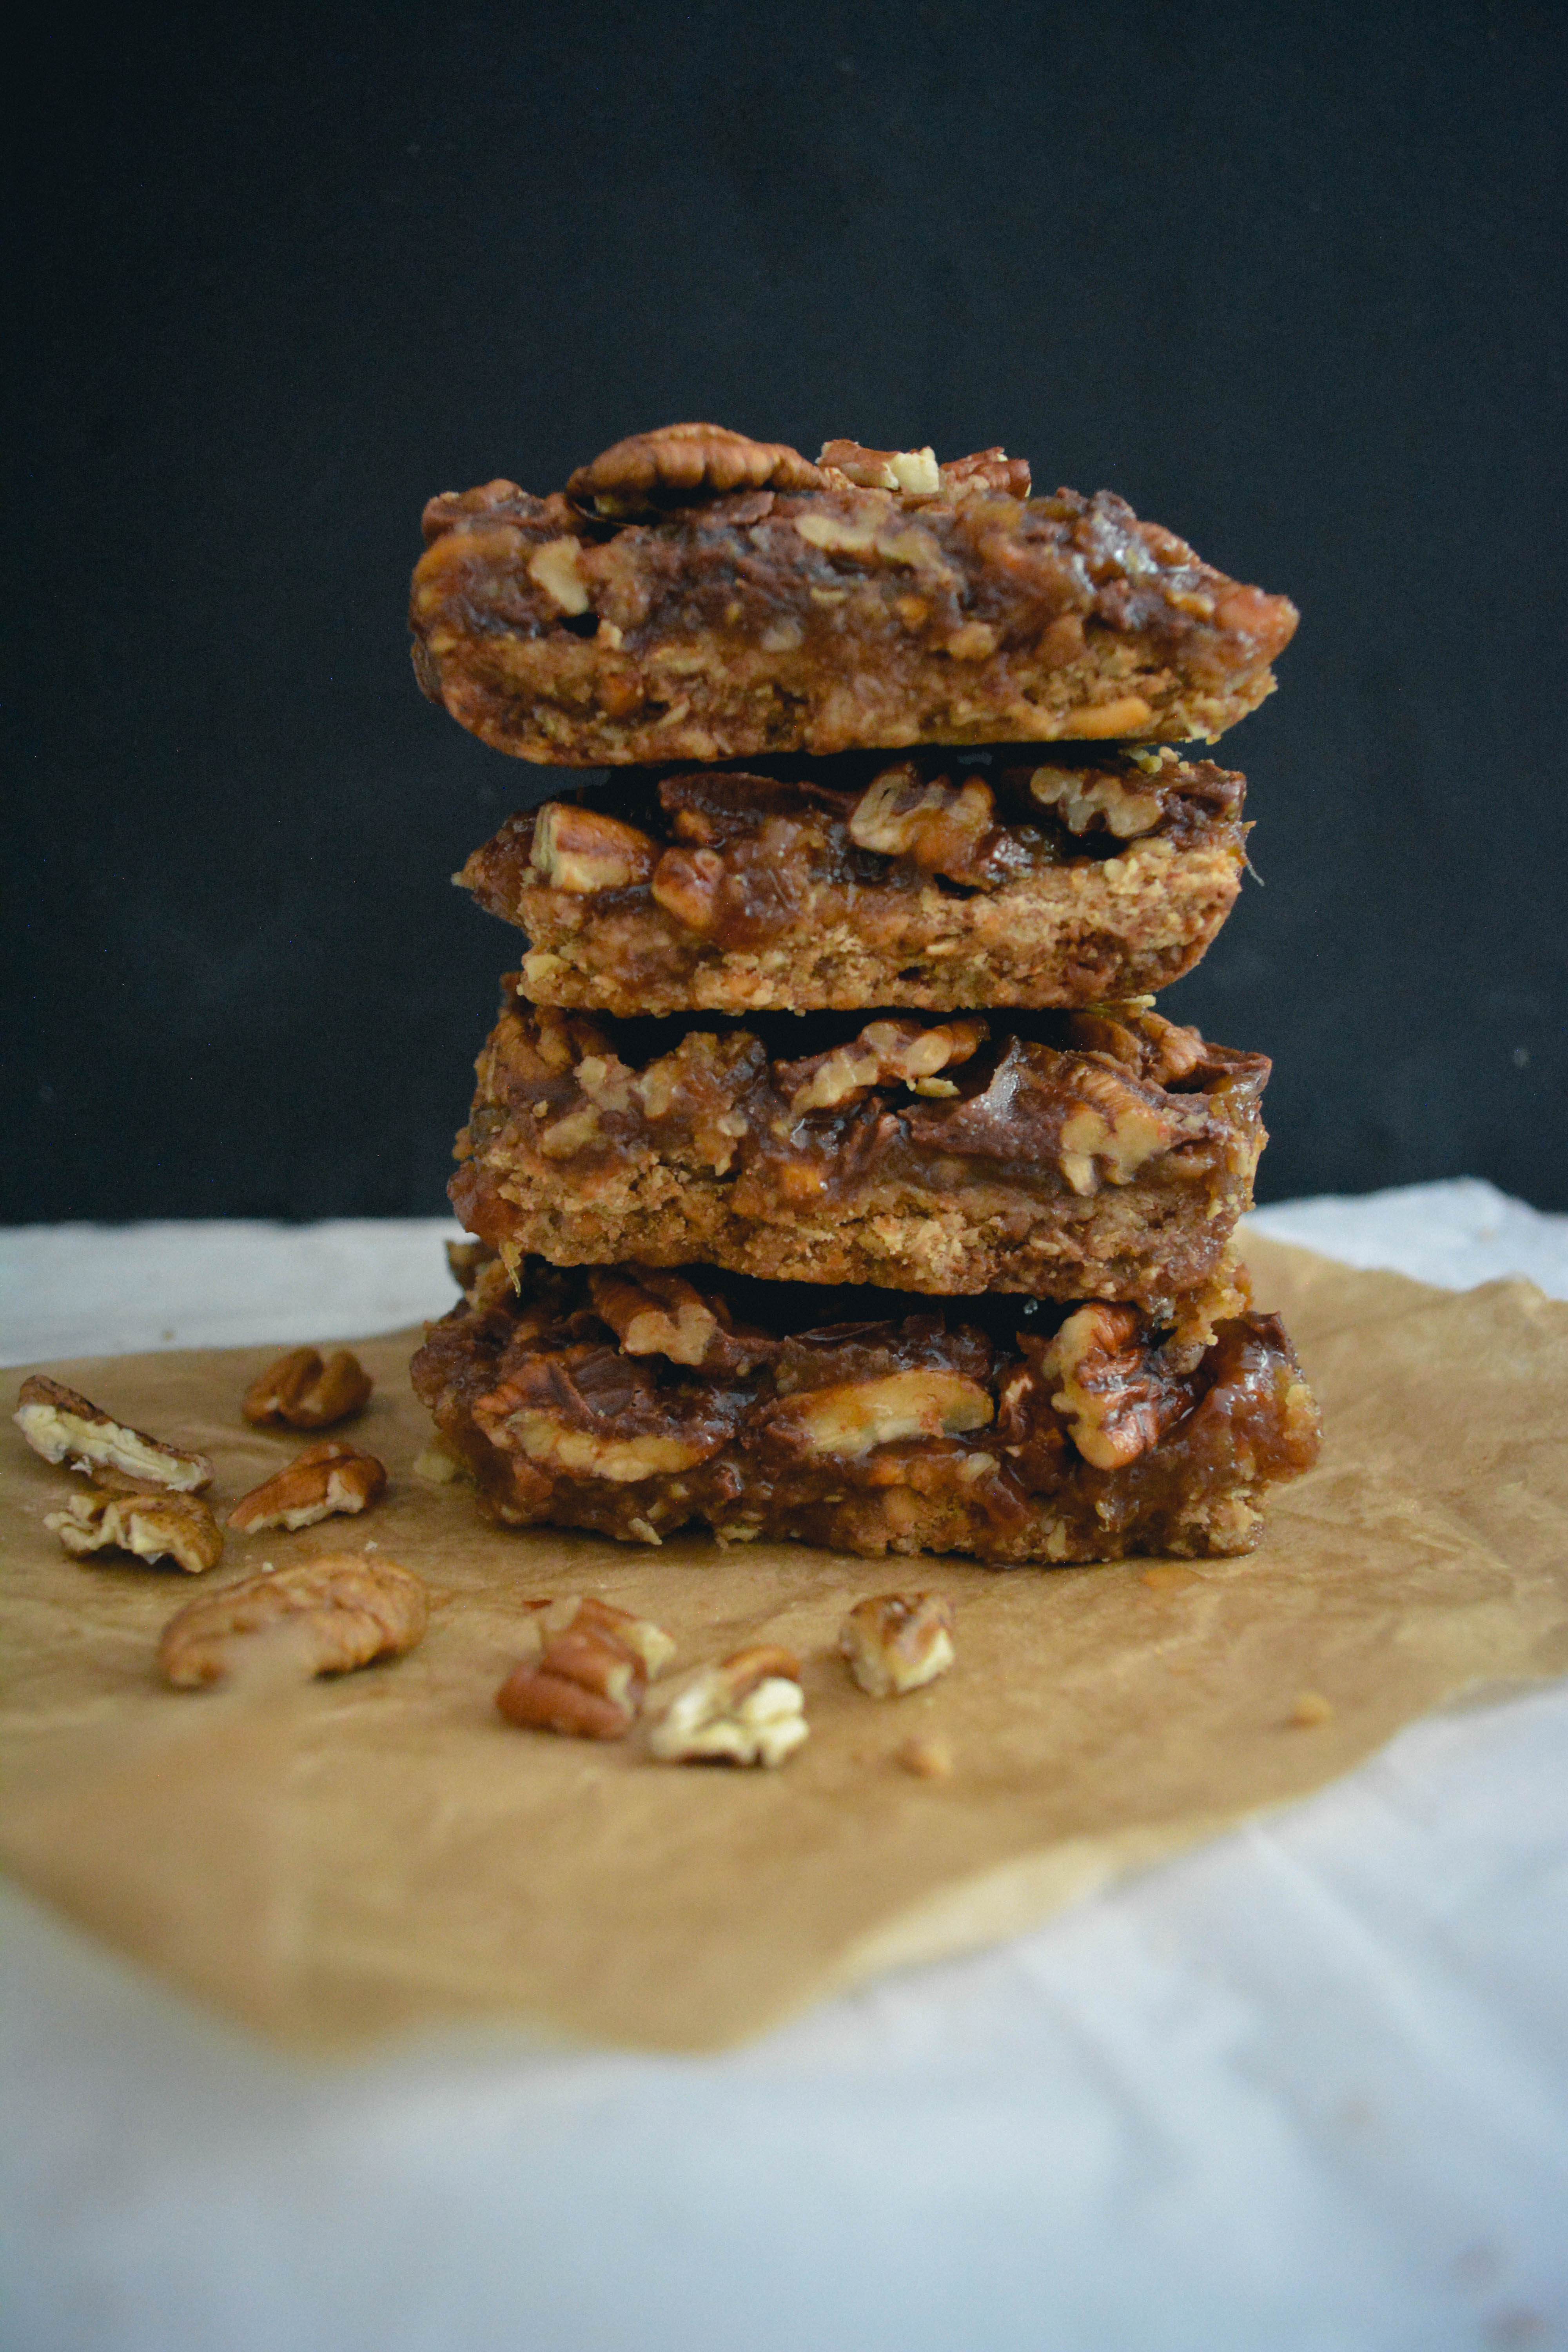 Pecan-Caramel-Chocolate-Shortbread-Bars